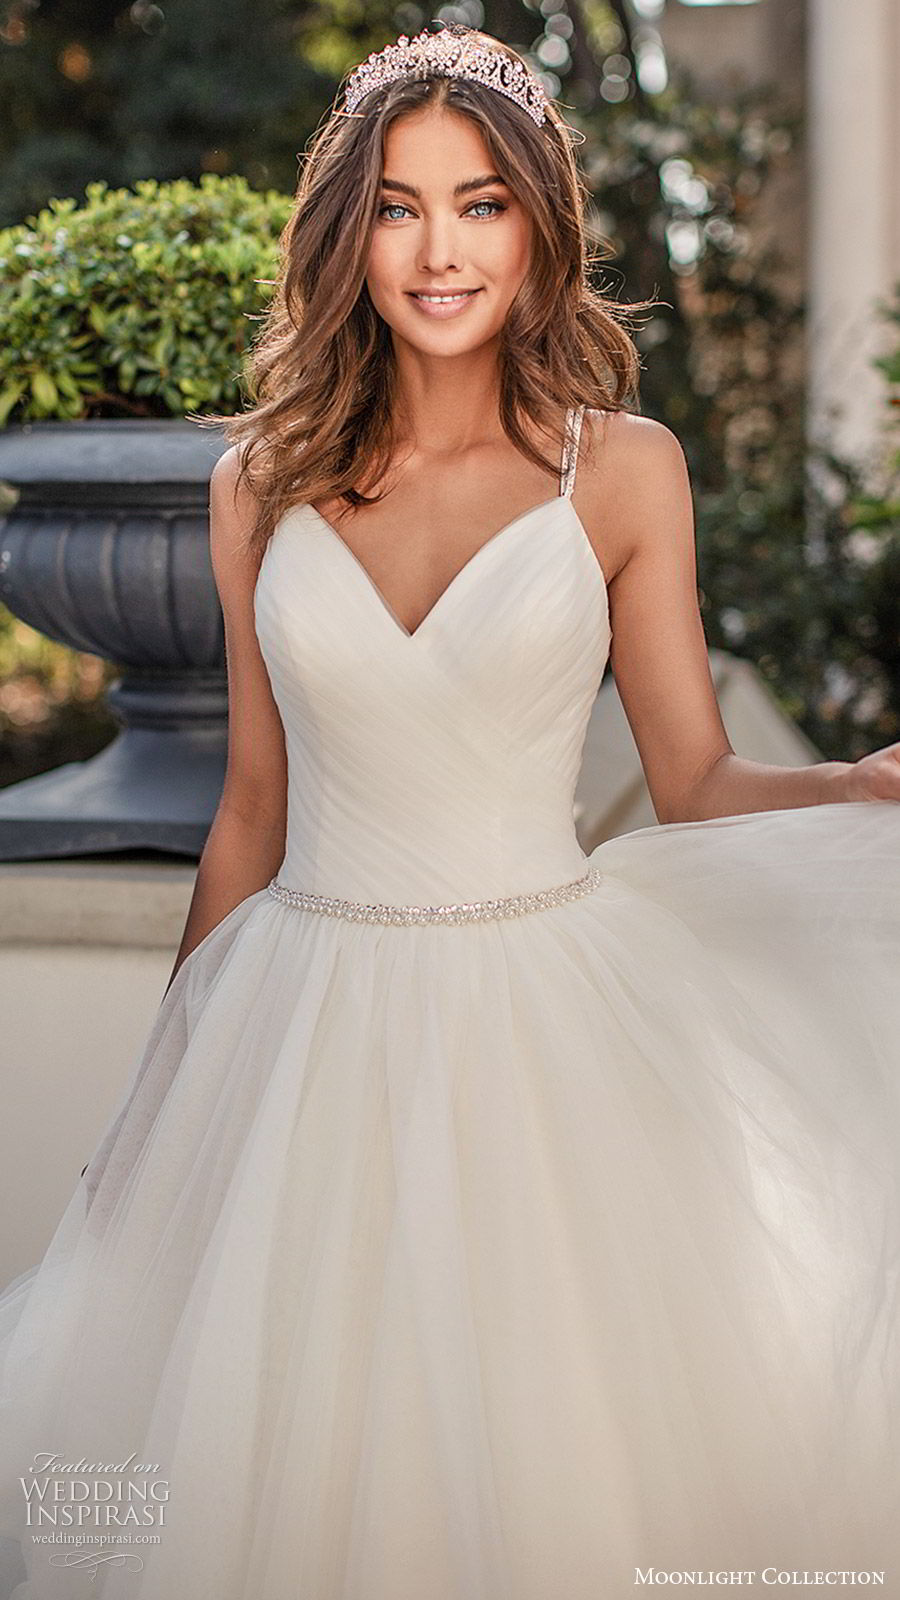 moonlight collection fall 2019 bridal sleeveless embellished straps v neck ruched bodice tiered skirt beaded waist a line ball gown wedding dress (5) clean romantic princess chapel train zv